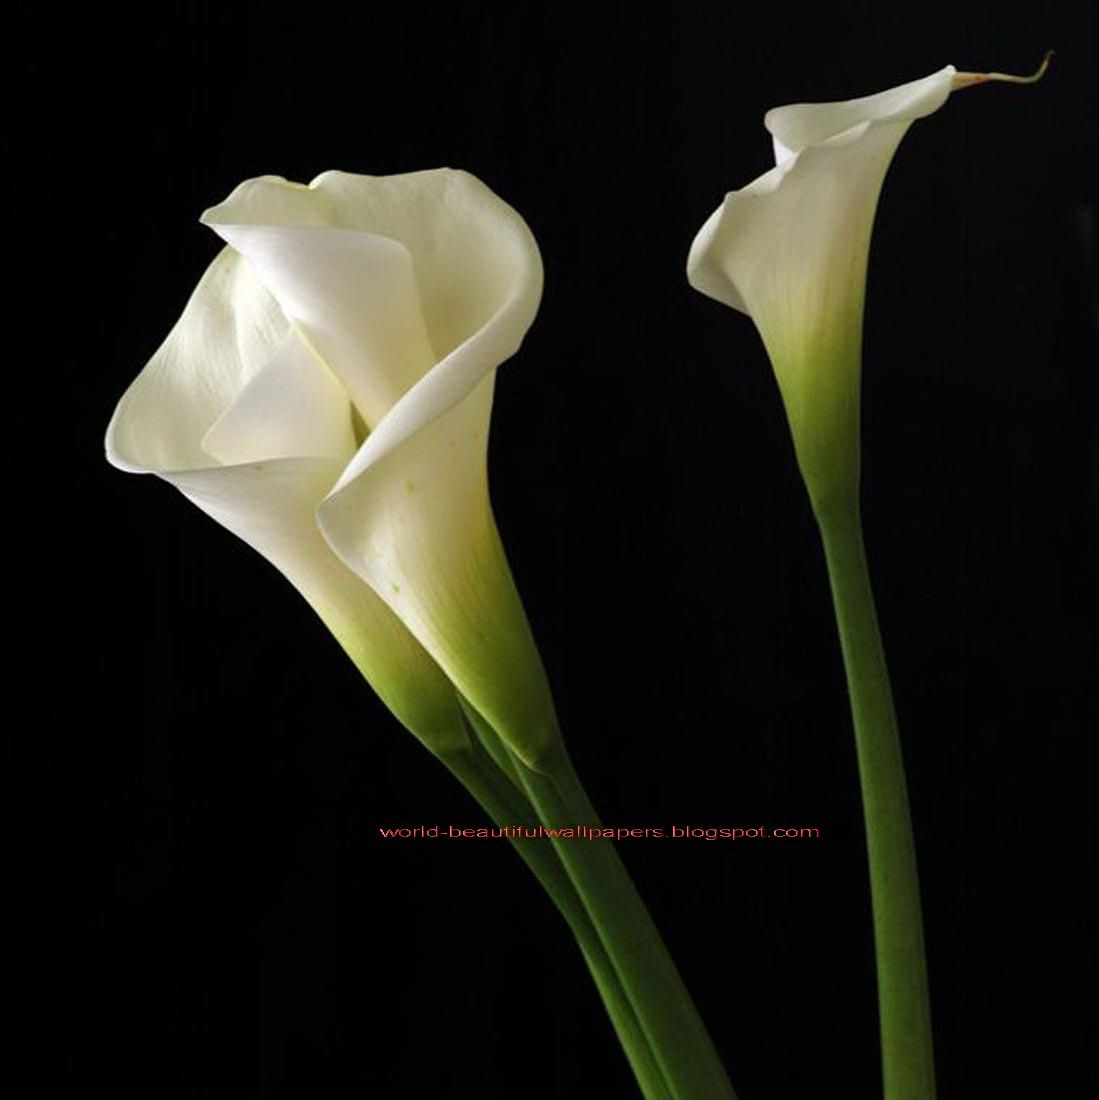 Calla lily hd wallpapers free download new hd wallpapers download calla lily hd wallpapers free download new hd wallpapers download izmirmasajfo